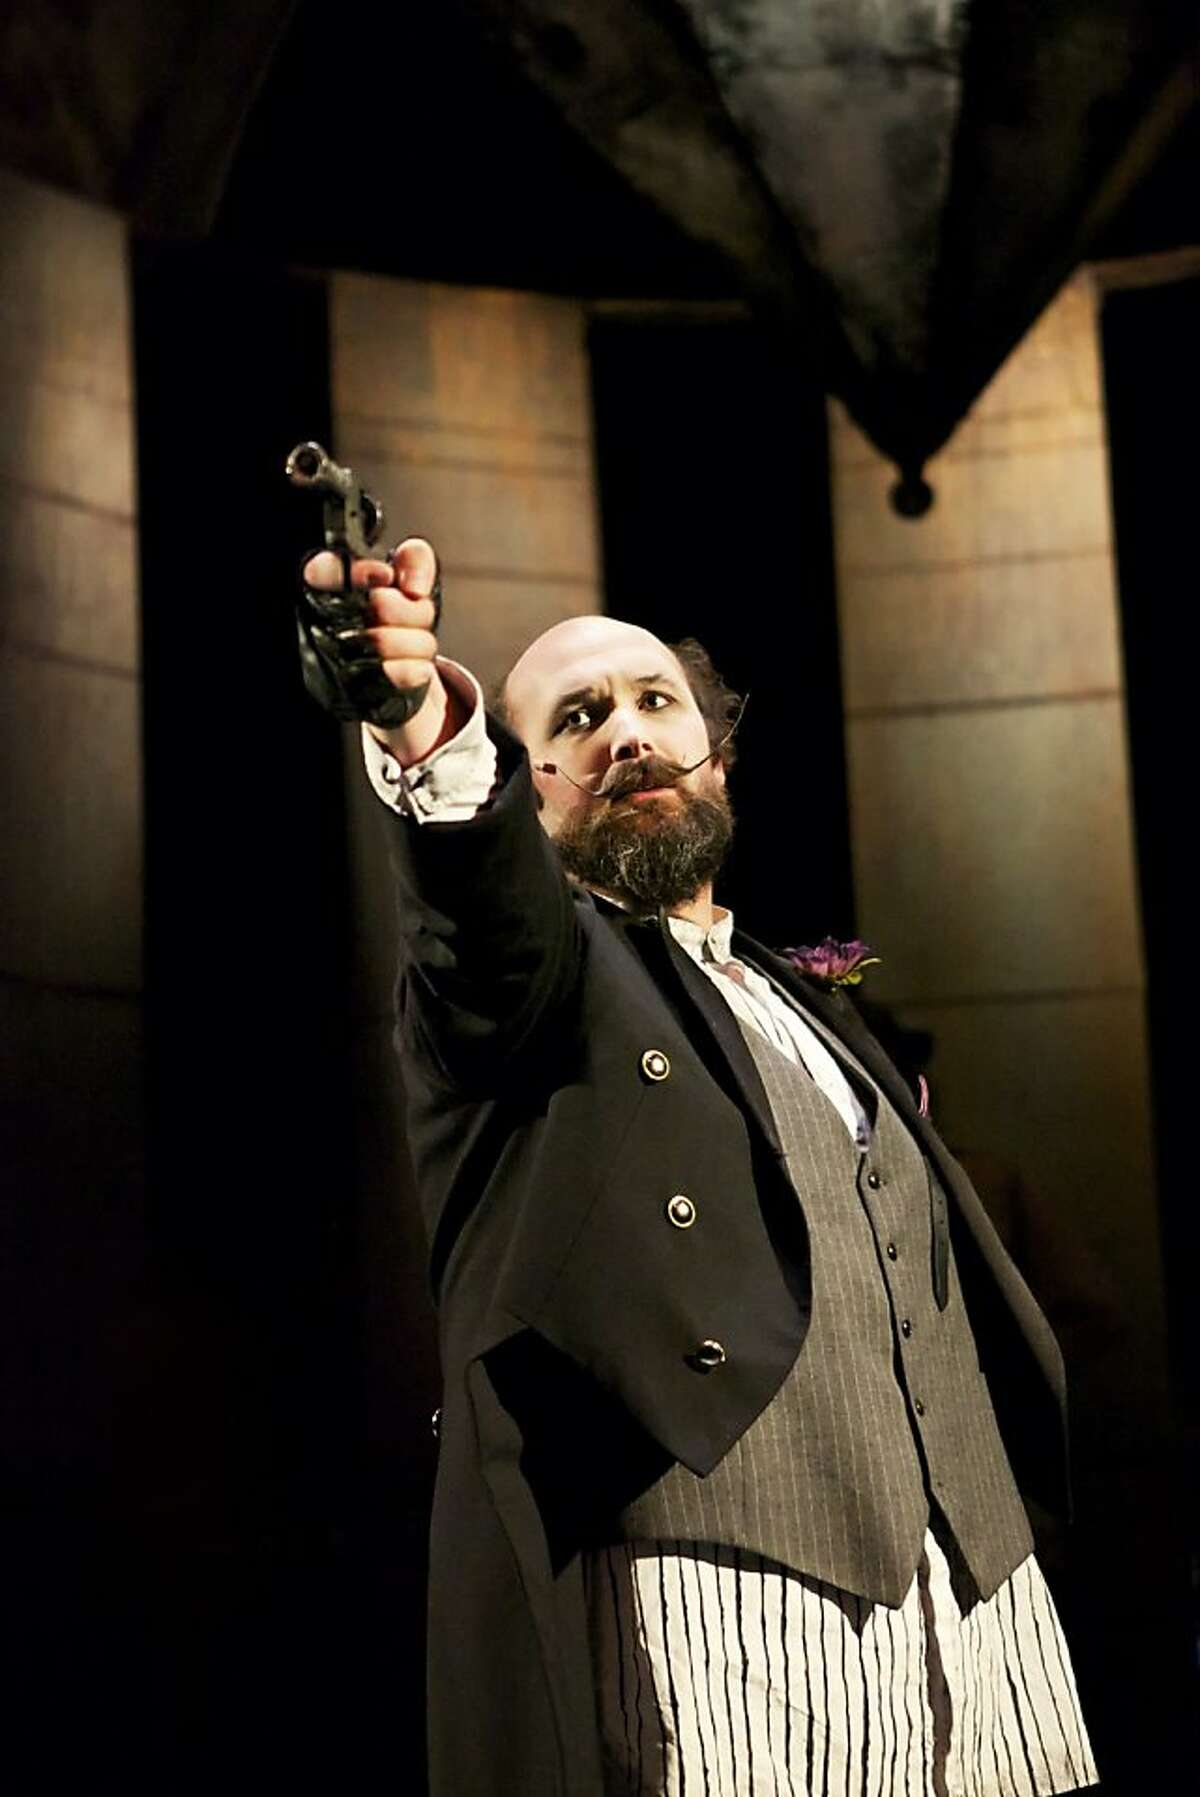 Charles Guiteau (Steven Hess) prepares to shoot a president in Shotgun Players' production of the Stephen Sondheim musical